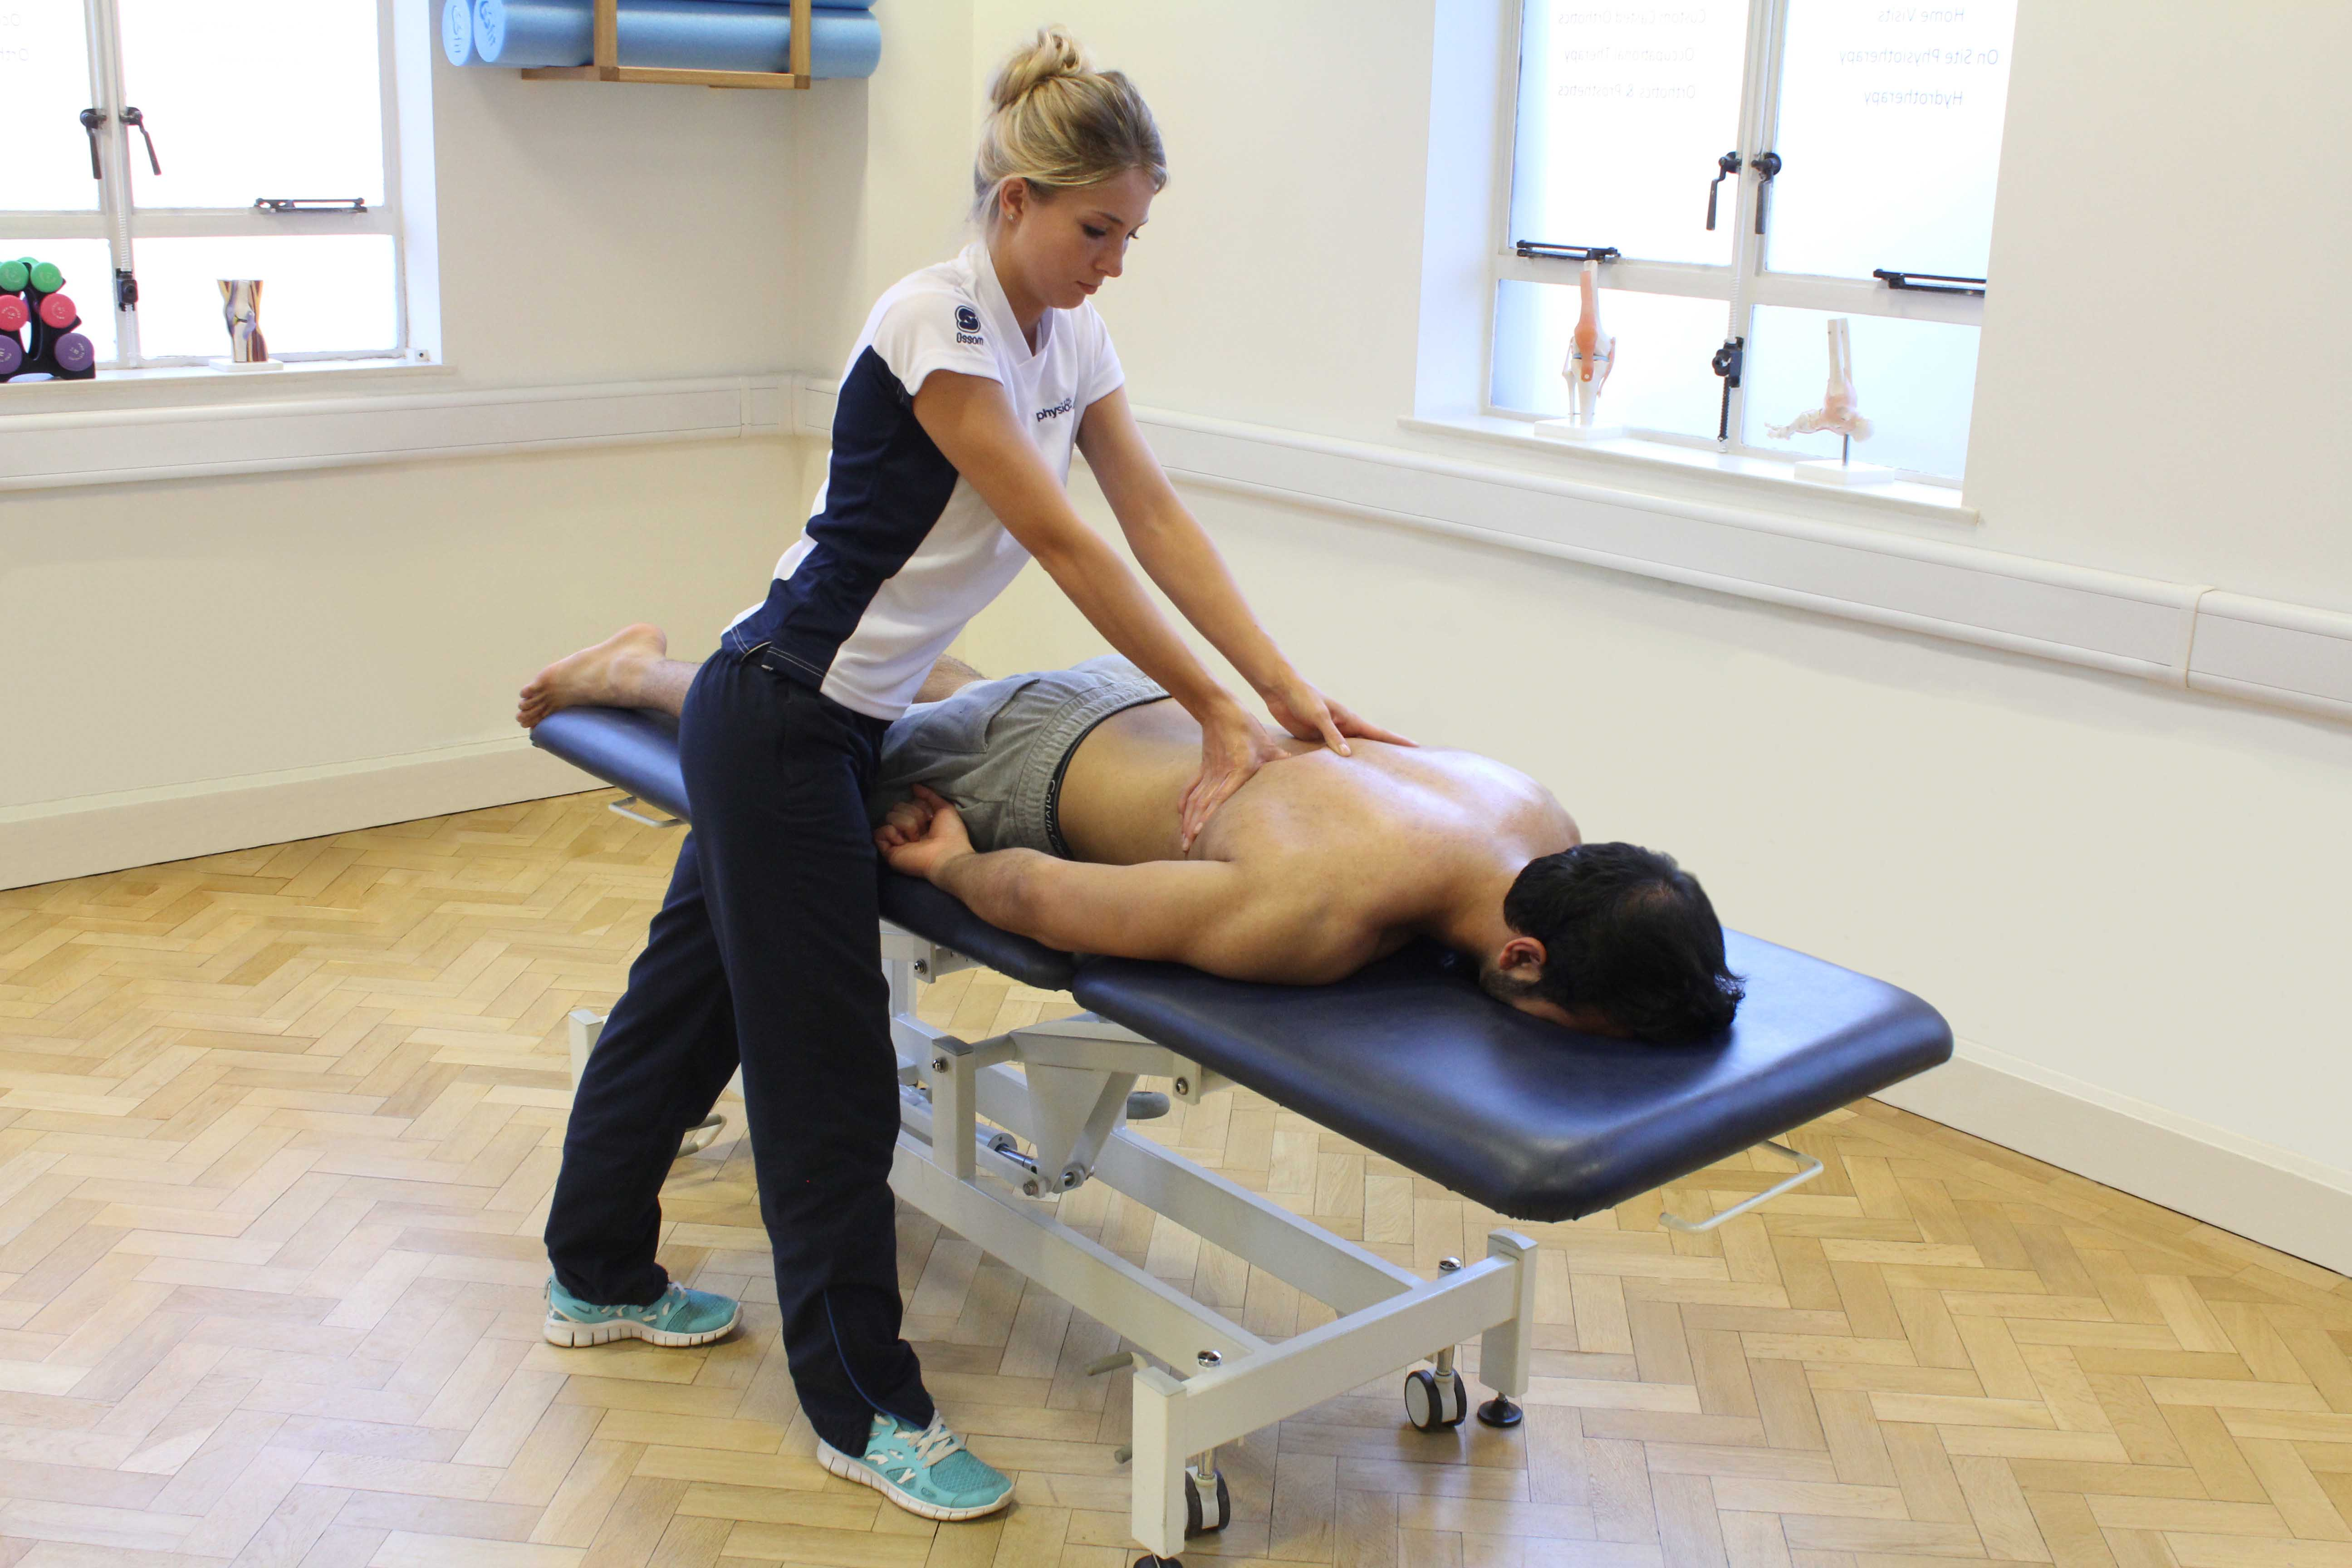 Trigger point massage of the thoracic vertebrea to relieve pain and stiffness